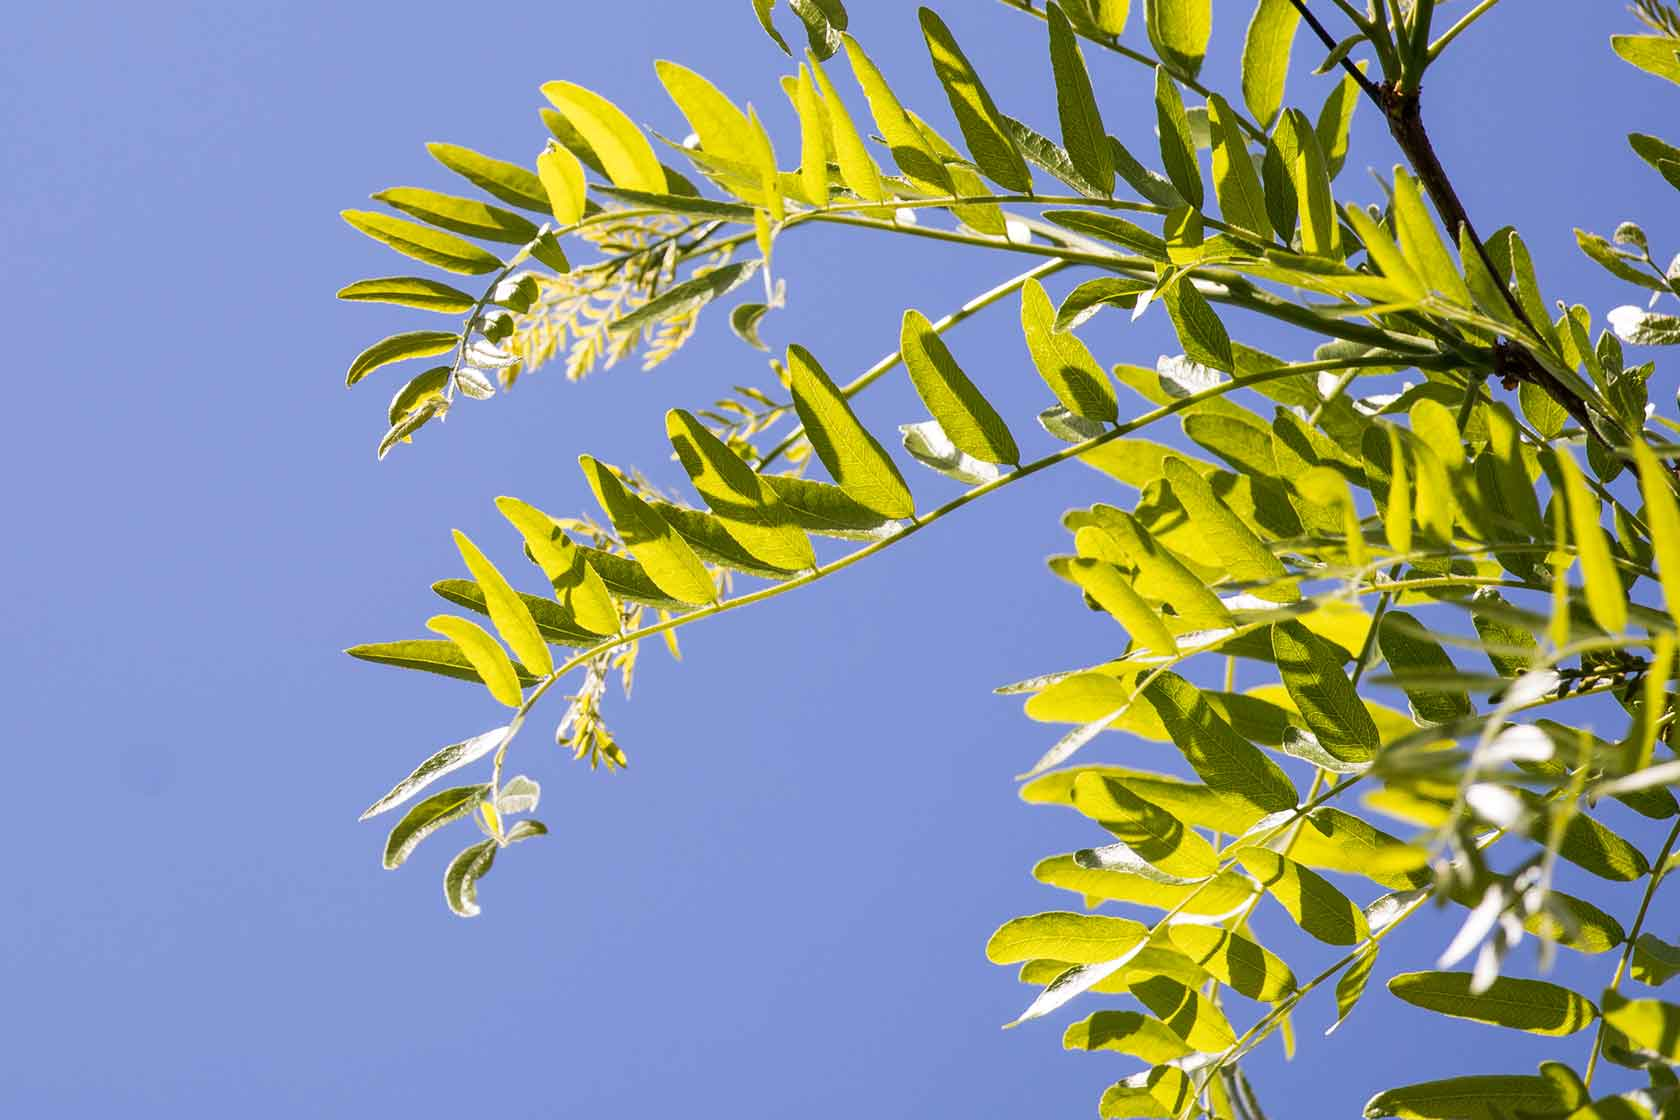 A closeup of the leaves on the honey locust trees in Hudson River Park